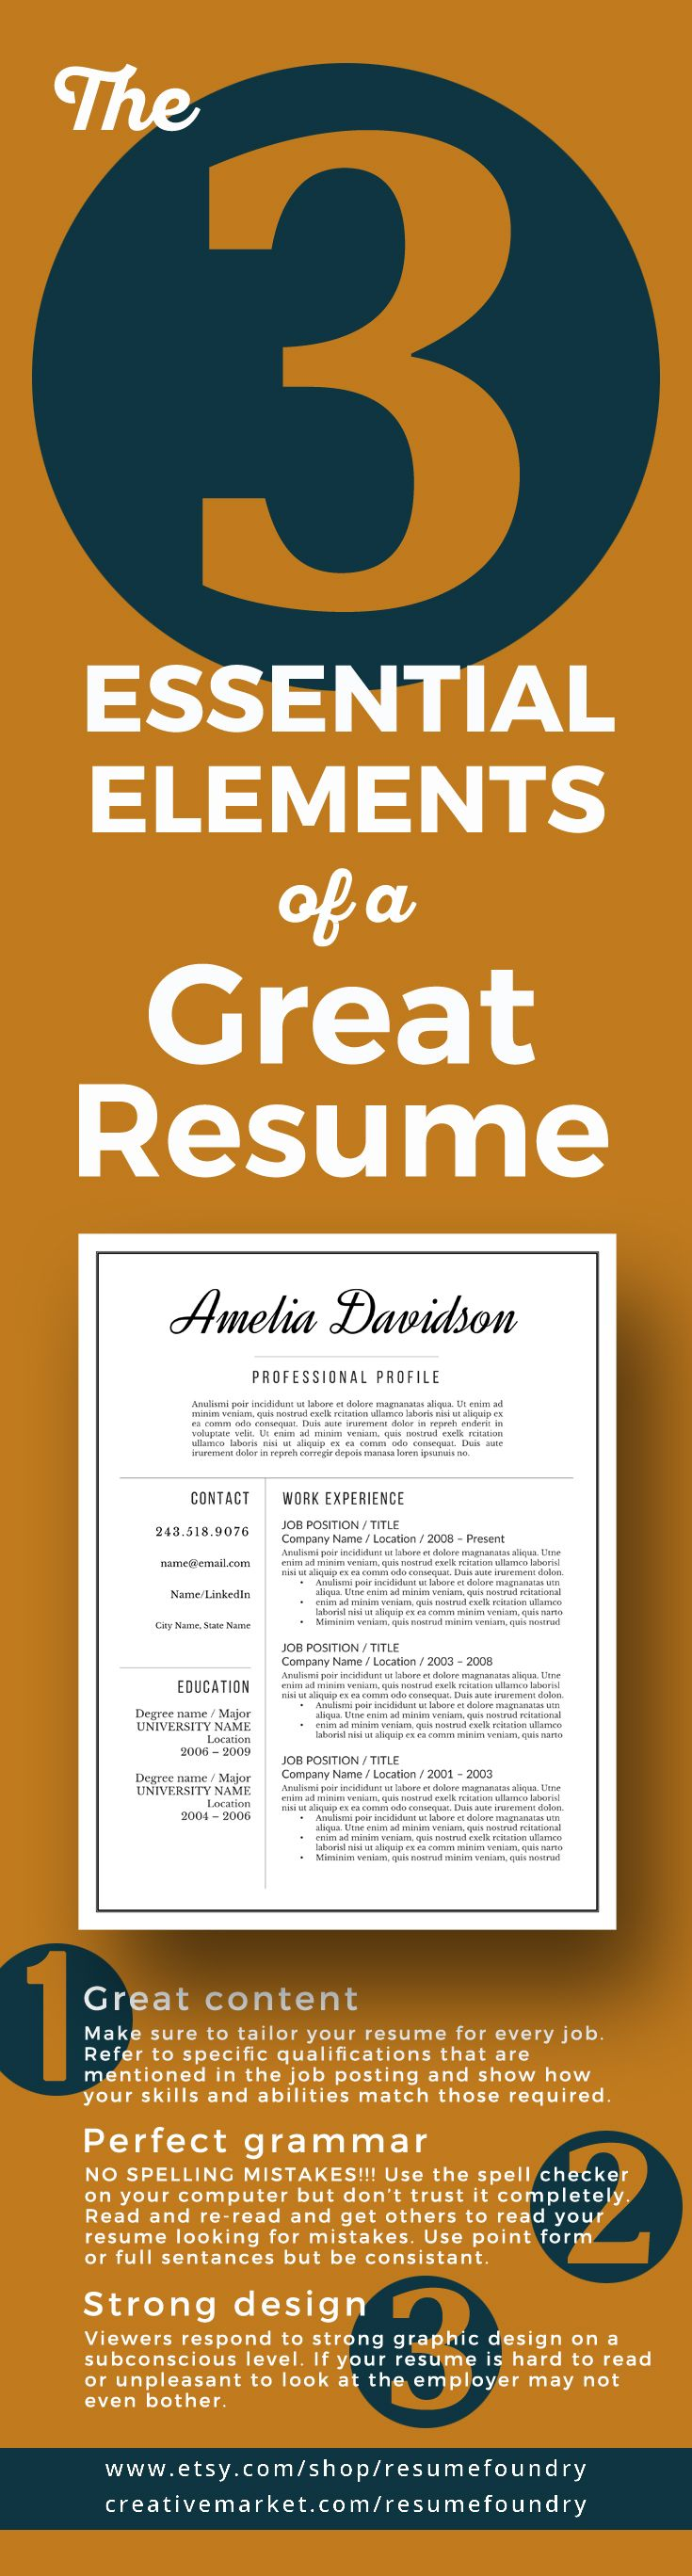 Make sure to include these three essential elements to perfect your resume - Resume Foundry, your resume template specialists.